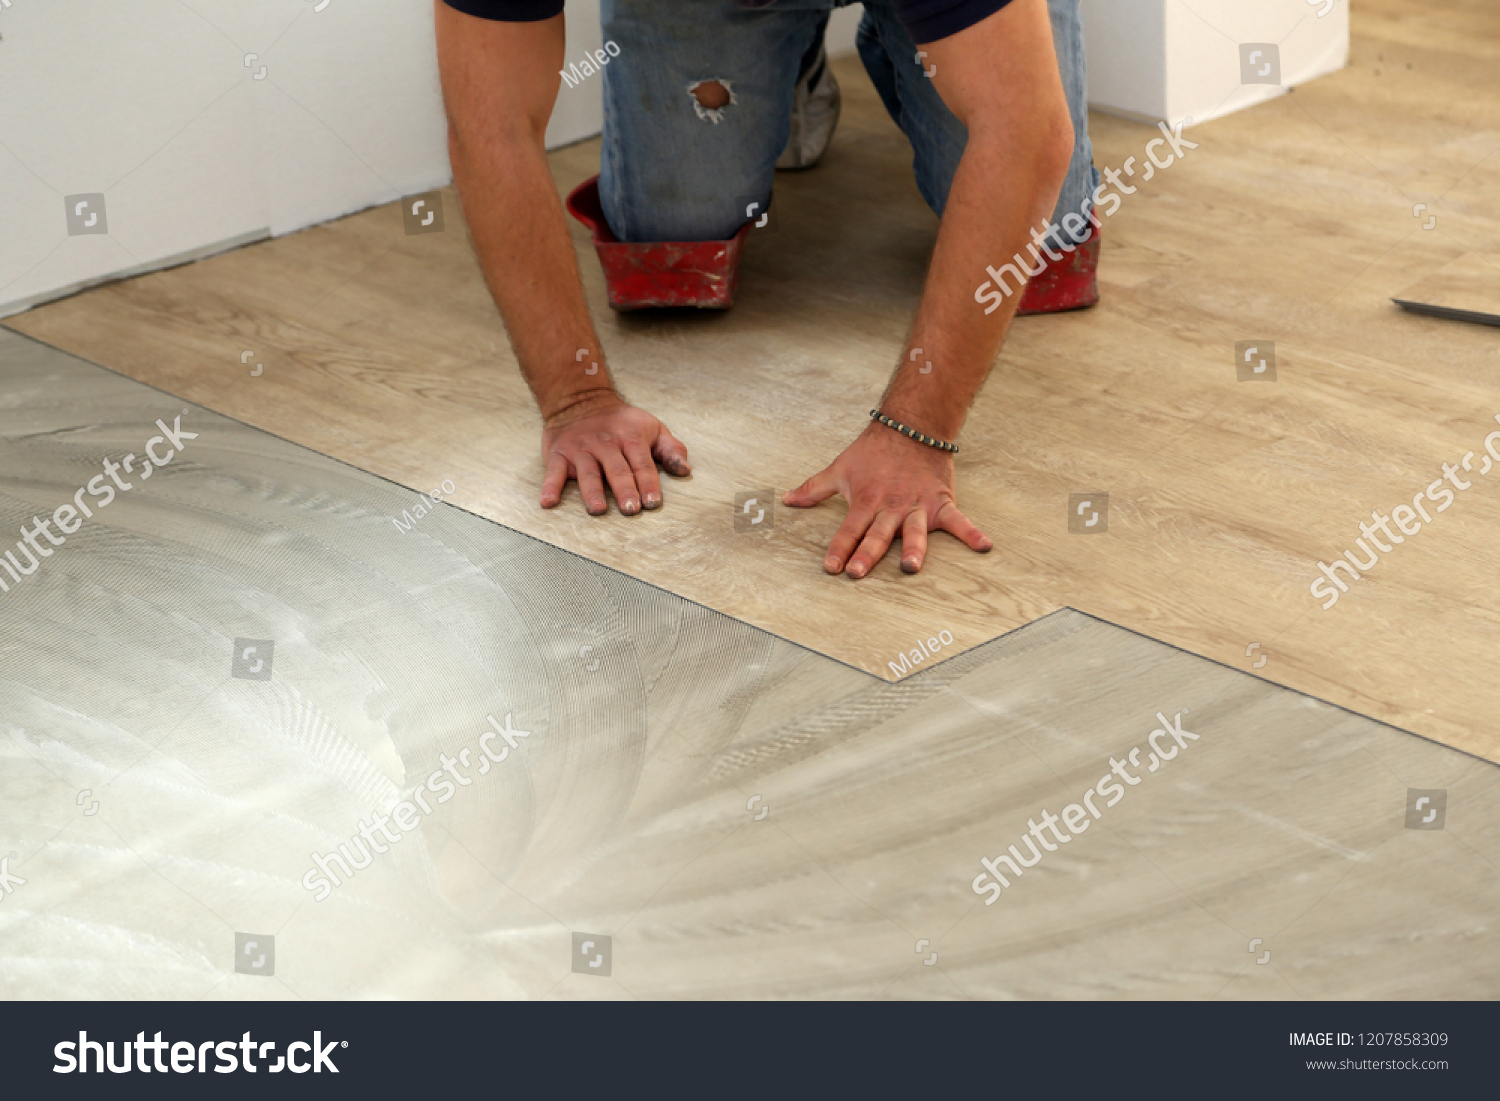 Installing Vinyl Tile Work On Laying Flooring Worker Installing Stock Photo Edit Now